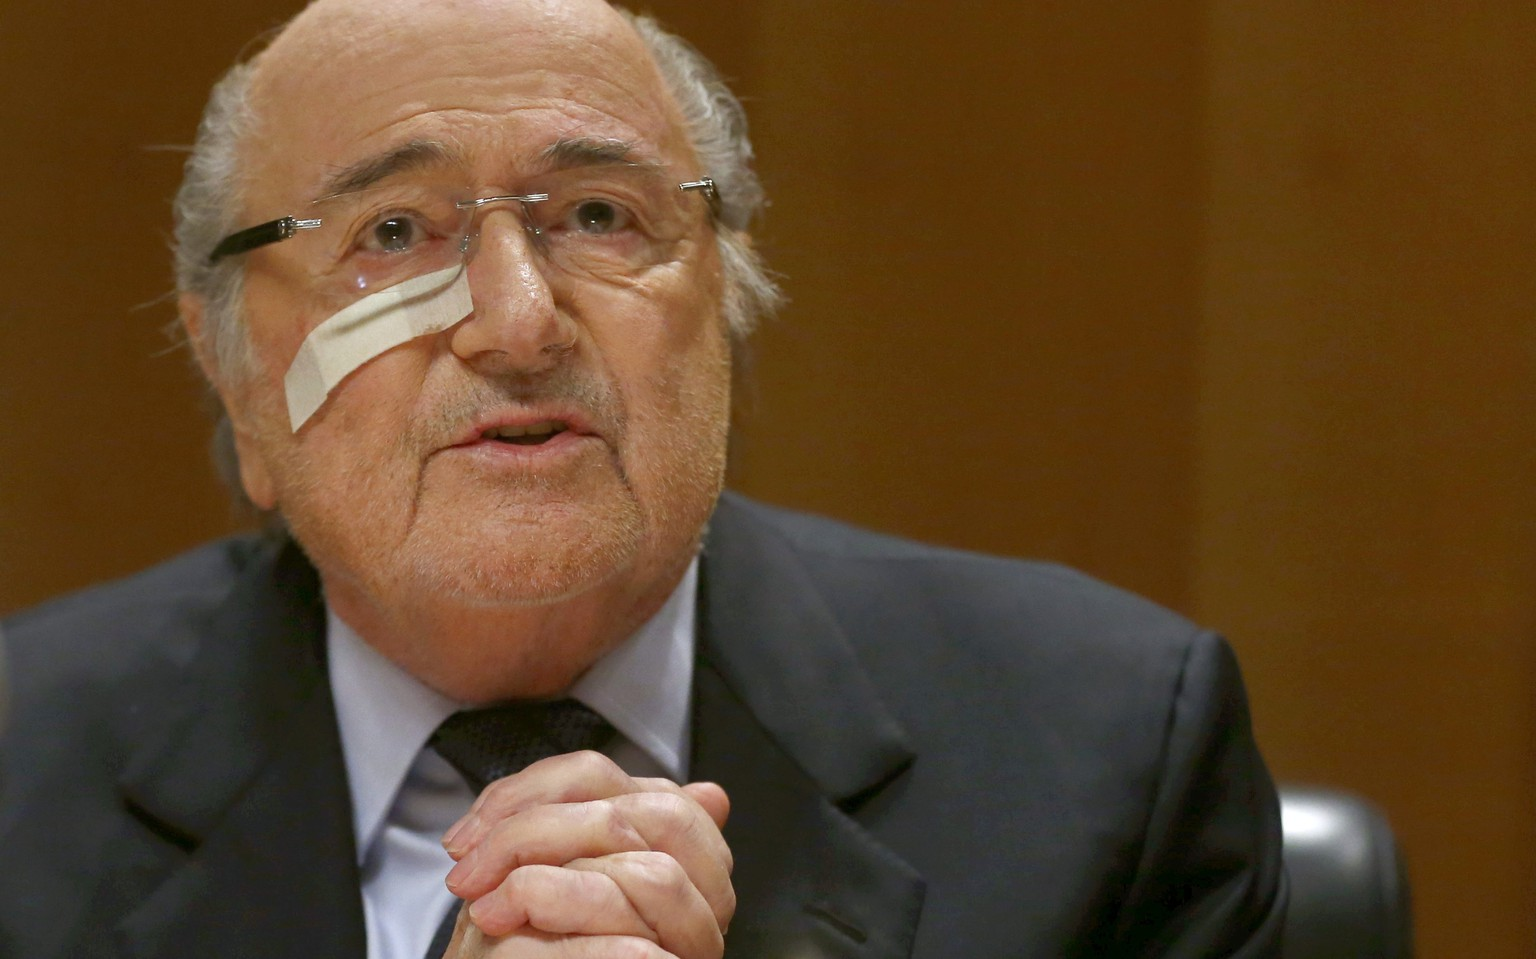 FIFA's suspended president Sepp Blatter holds a news conference in Zurich, Switzerland, December 21, 2015. Blatter will appeal against his eight-year ban by the world soccer body's ethics committee imposed on Monday, he told reporters.